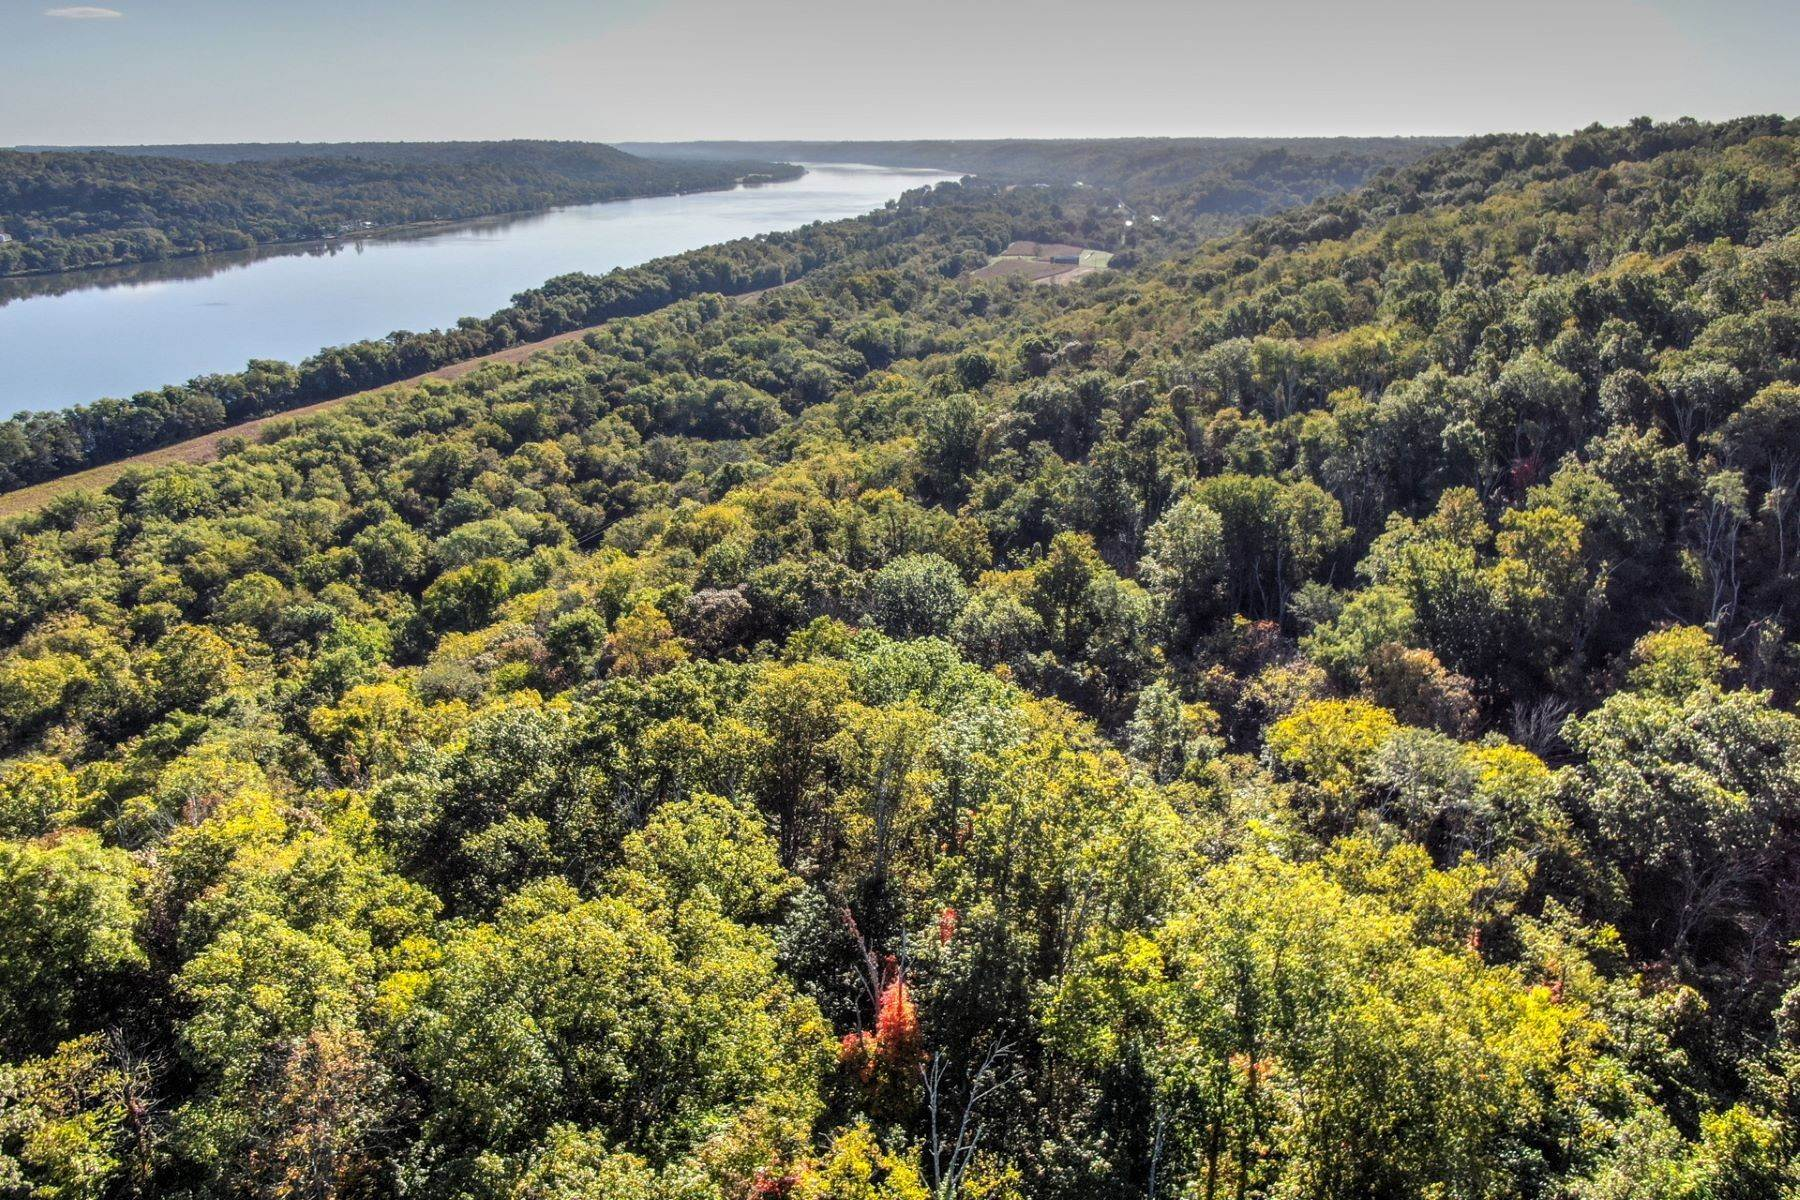 Land for Sale at 0 Bradford Road (#1941 acreage) Foster, KY 41043 0 Bradford Rd., ( #1941 acreage) Foster, Kentucky 41043 United States